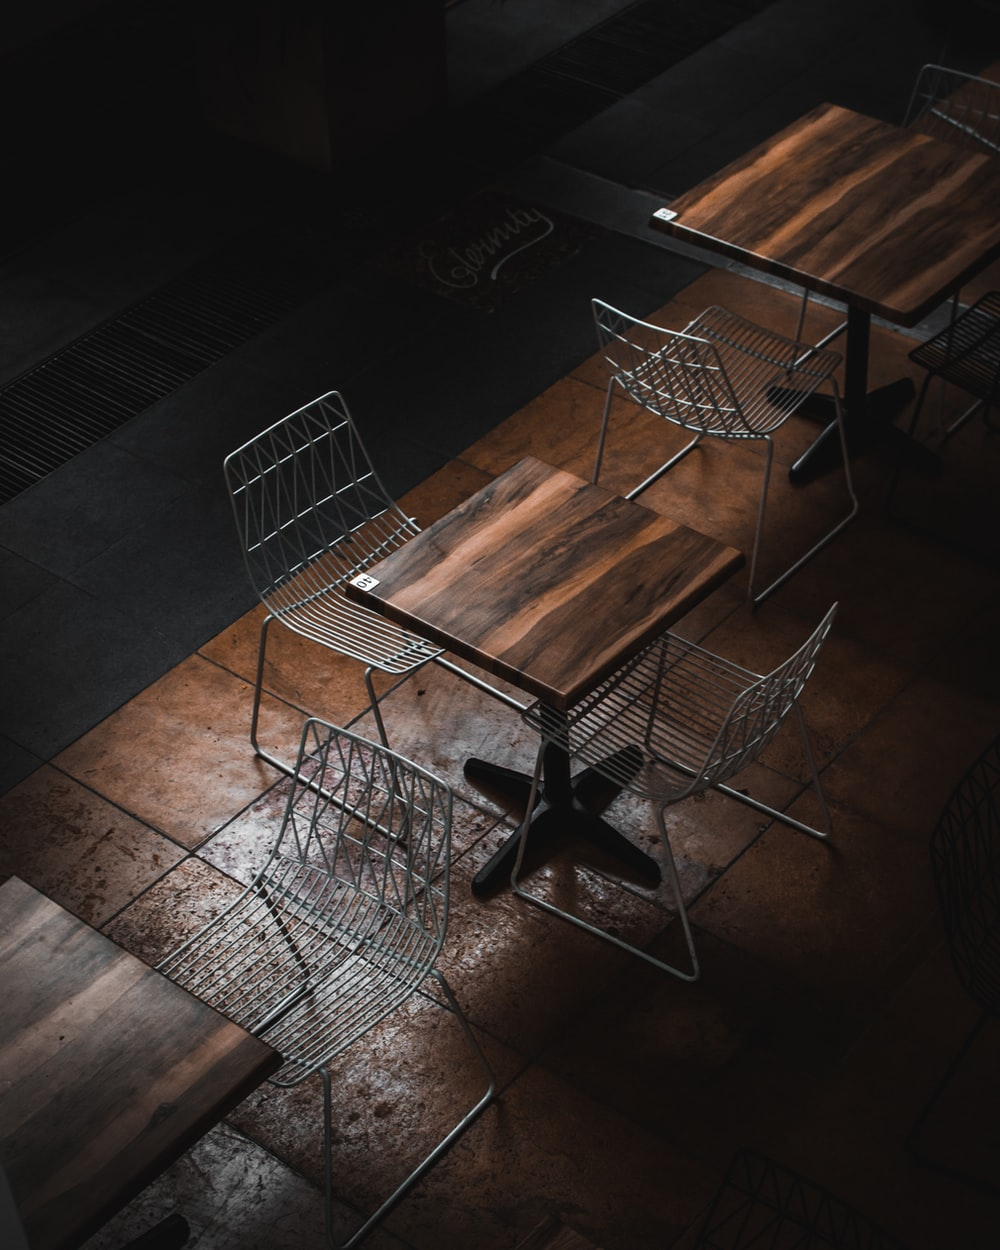 table with chairs placed on brown floor